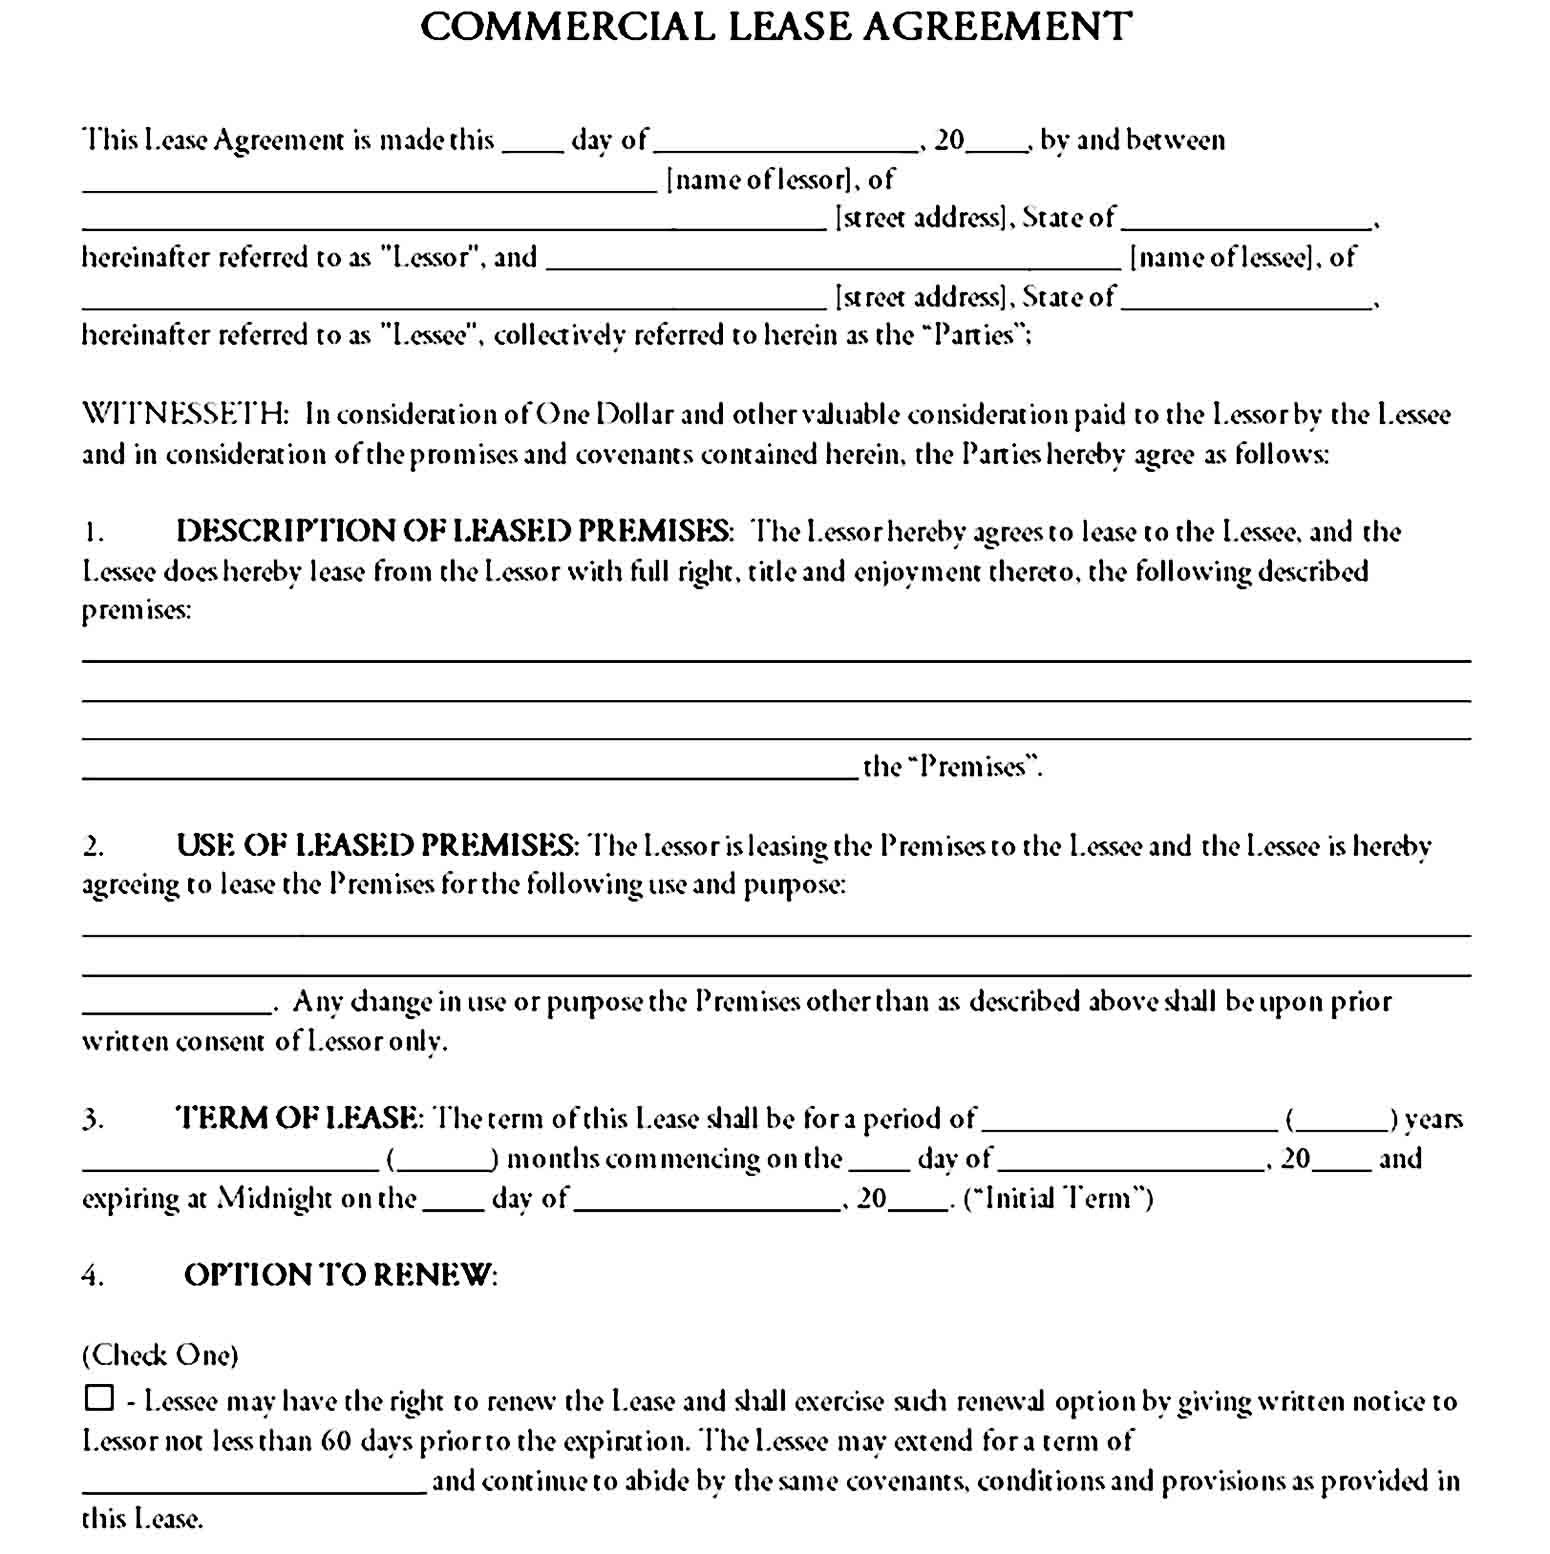 Commercial Lease Agreement Printable In 2021 Lease Agreement Lease Business Template Option to renew lease form